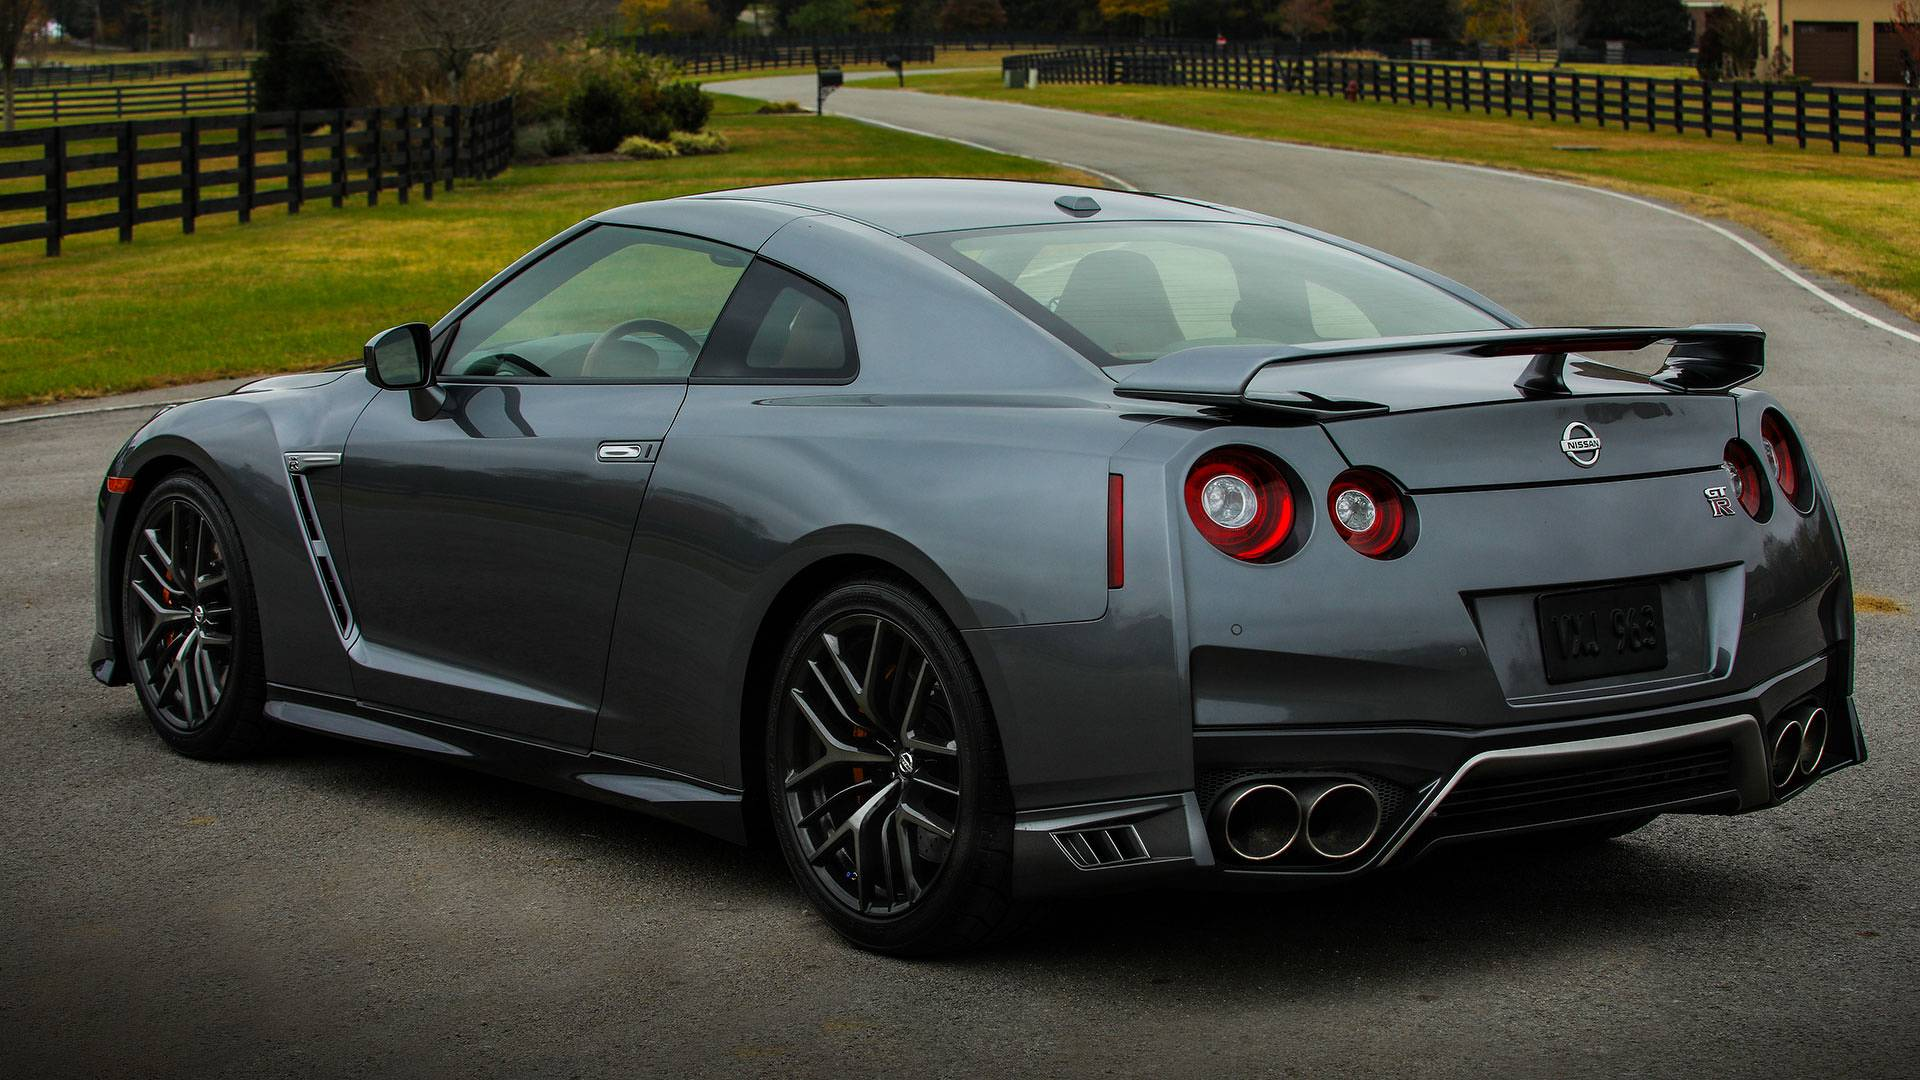 edition track nissan oem coupe gt information and photos exterior ed r fq used gtr zombiedrive